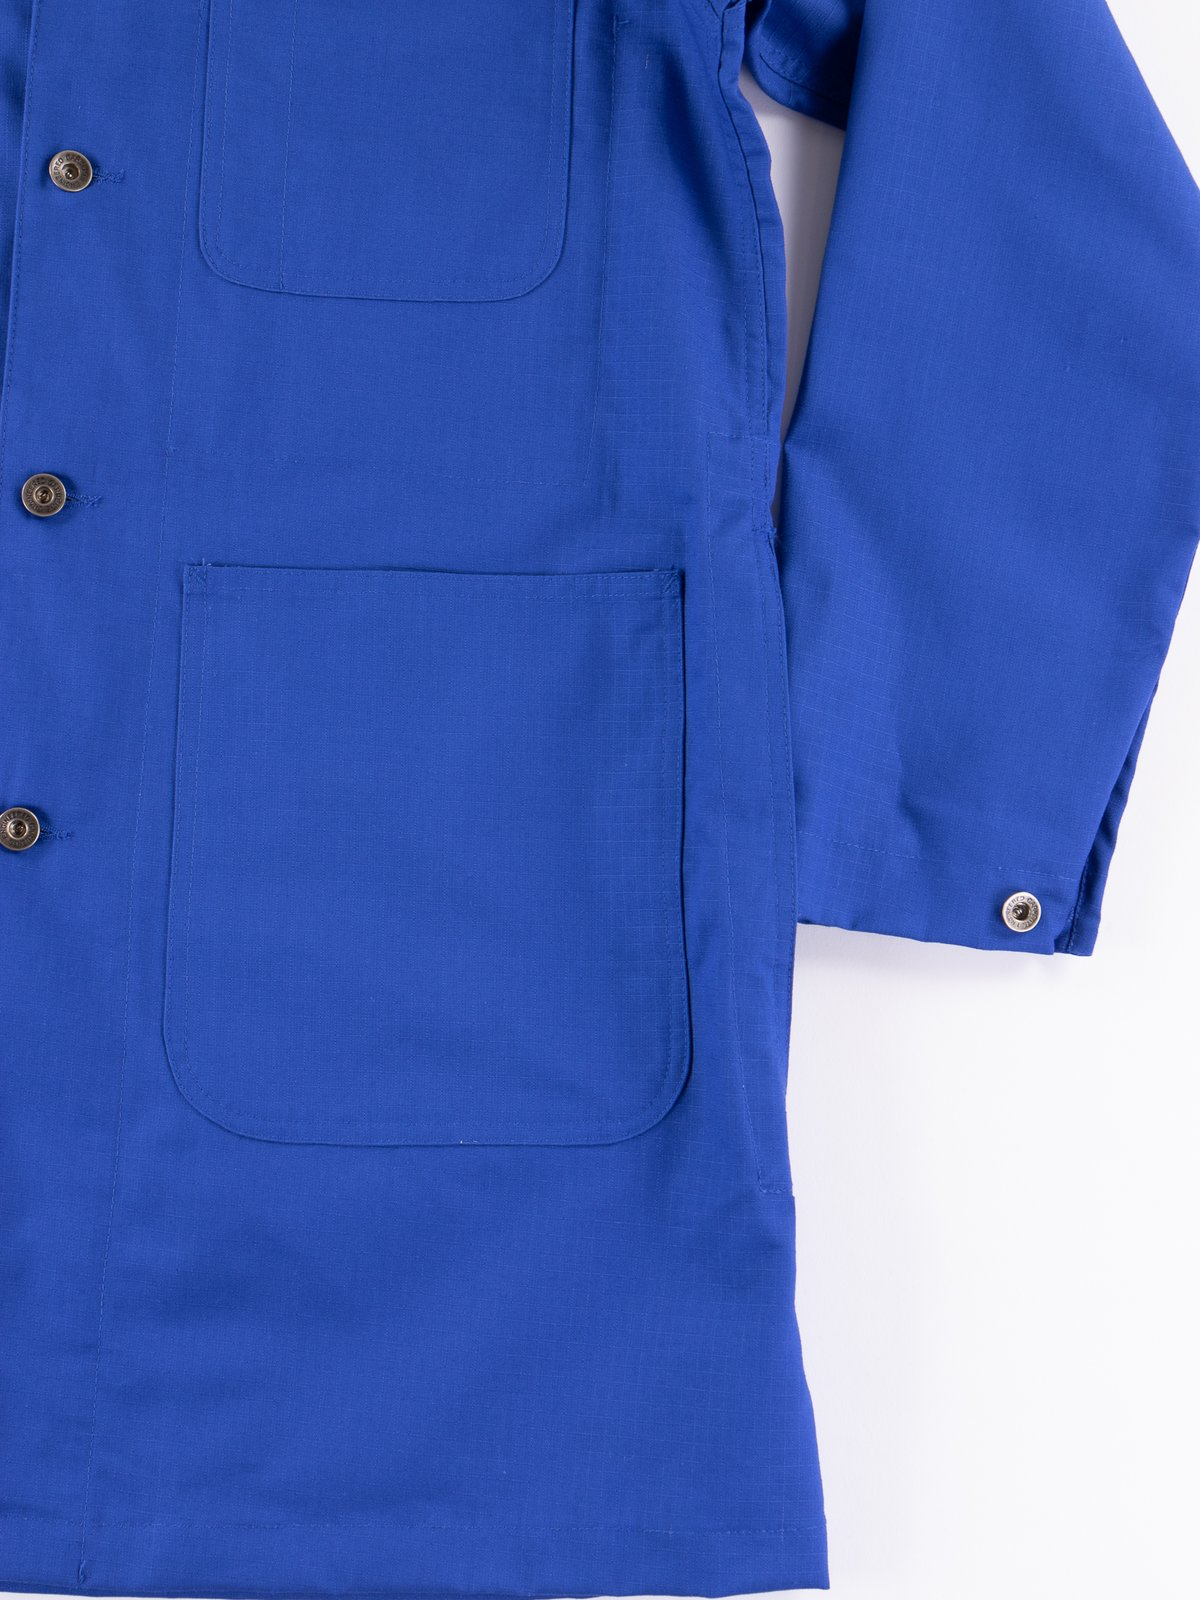 Royal Cotton Ripstop Shop Coat - Image 3